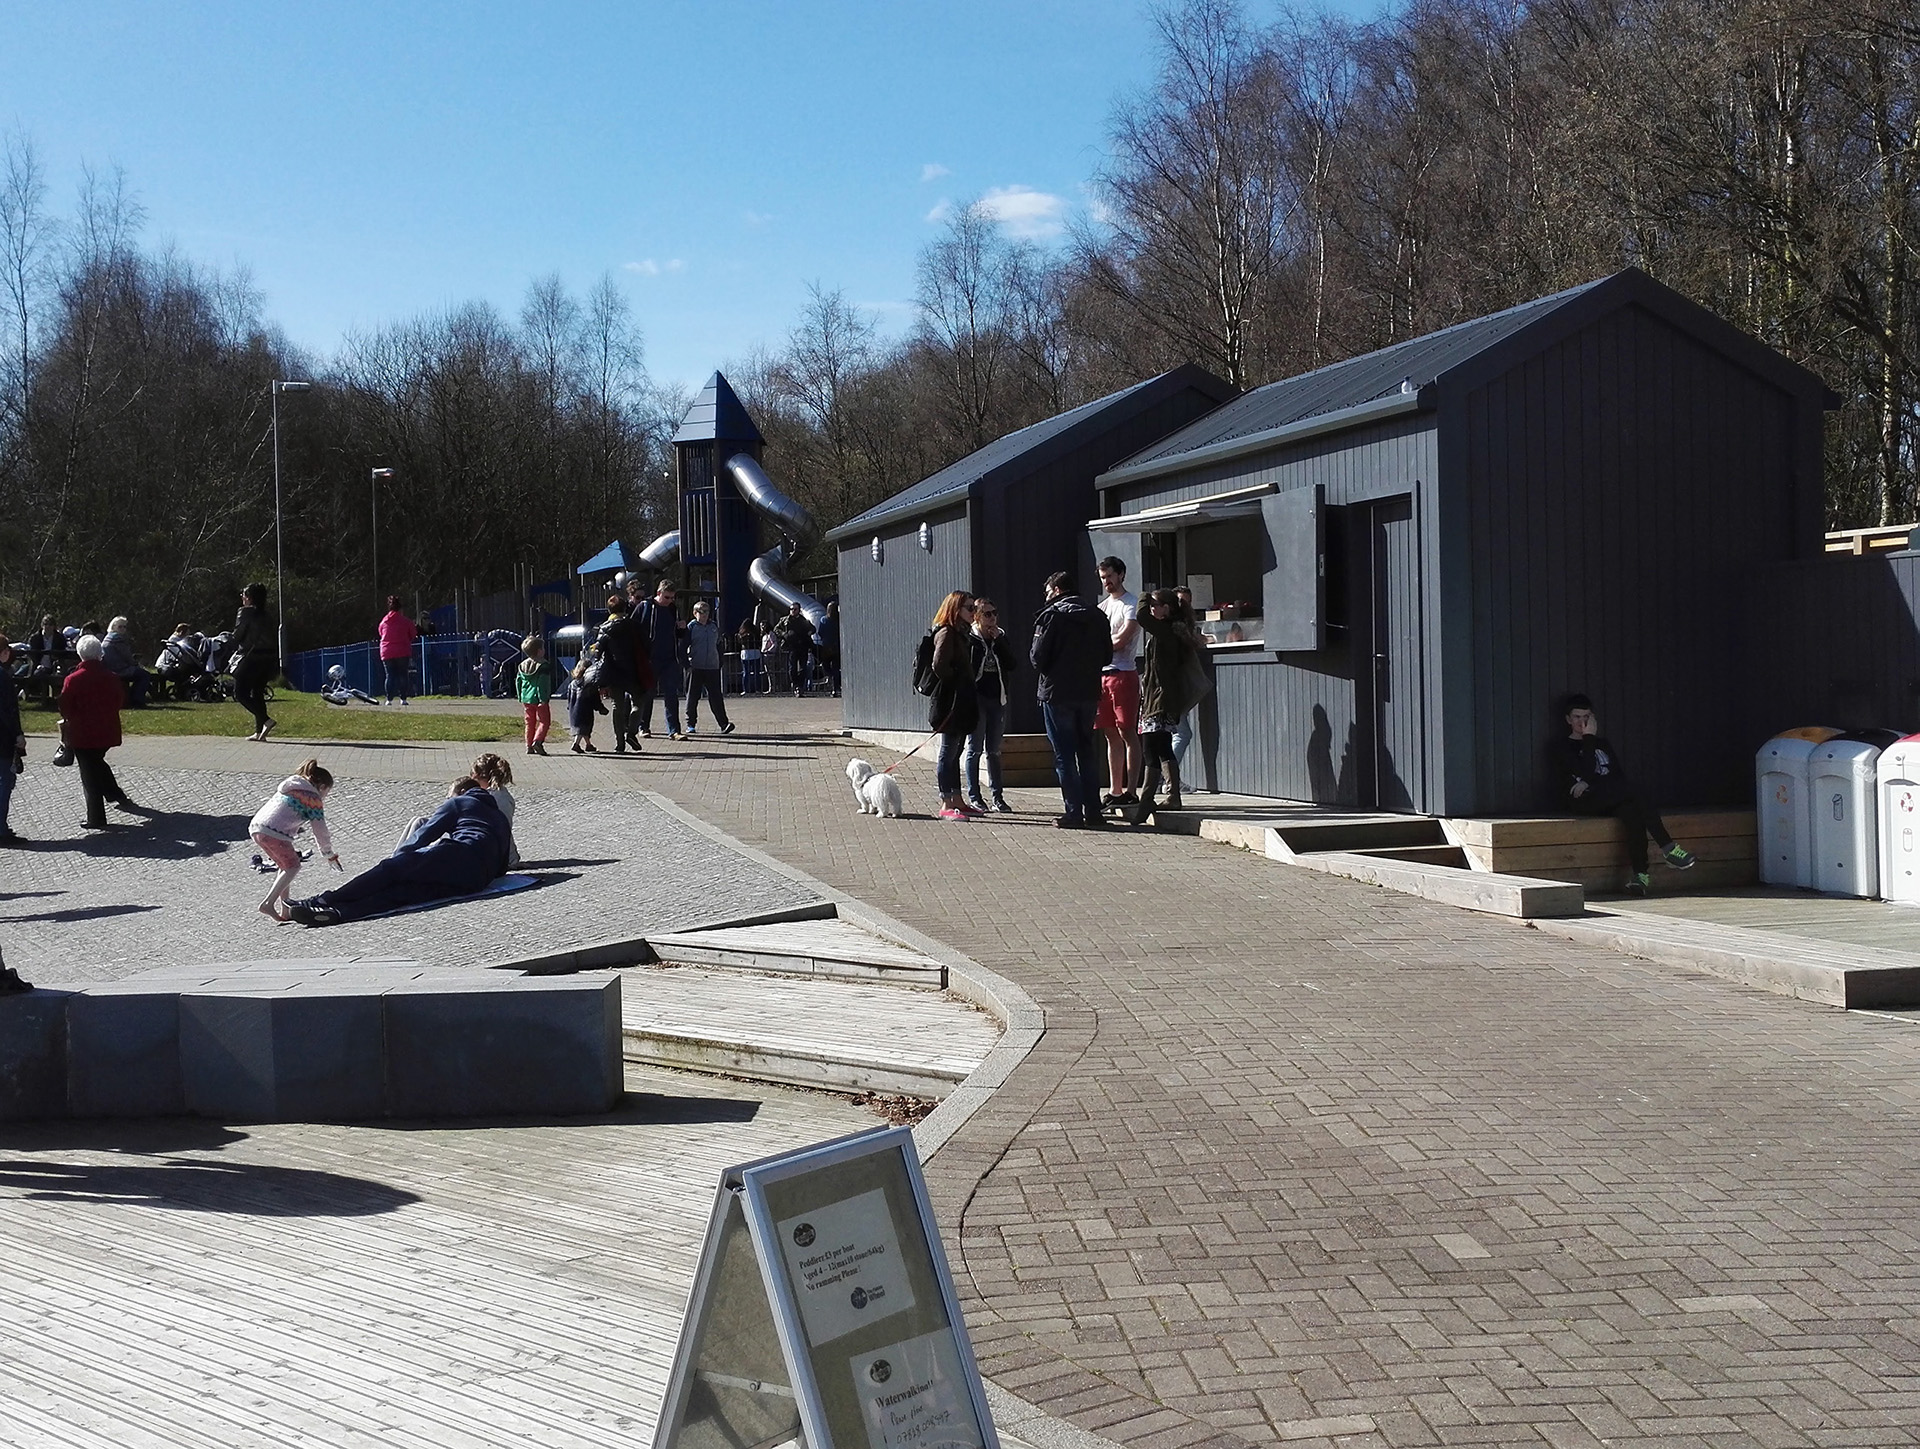 The Falkirk Wheel - small food court